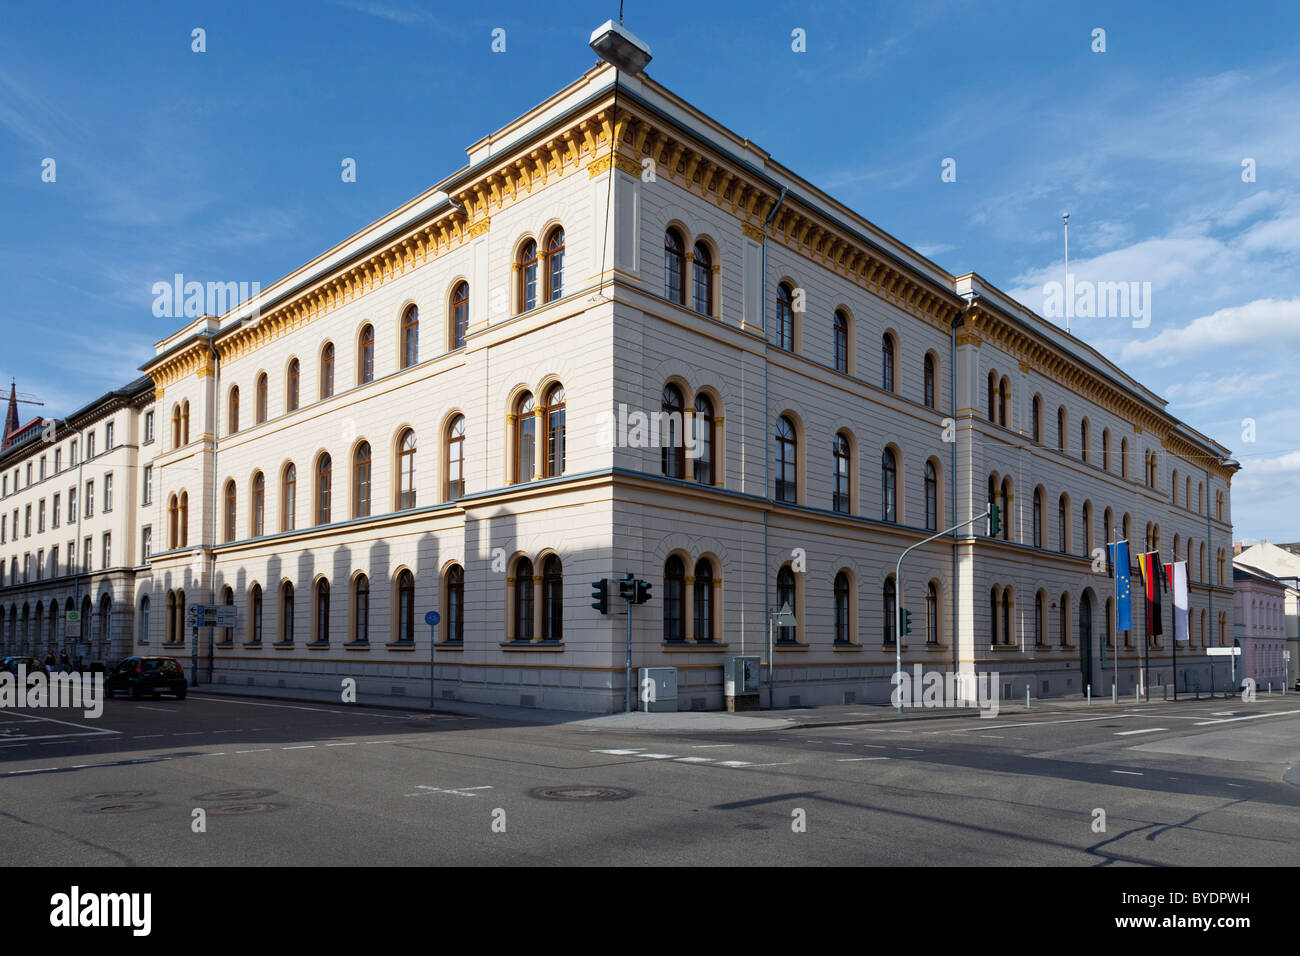 The Hessian Ministry of Justice, for Integration and Europe, Wiesbaden, Hesse, Germany, Europe - Stock Image